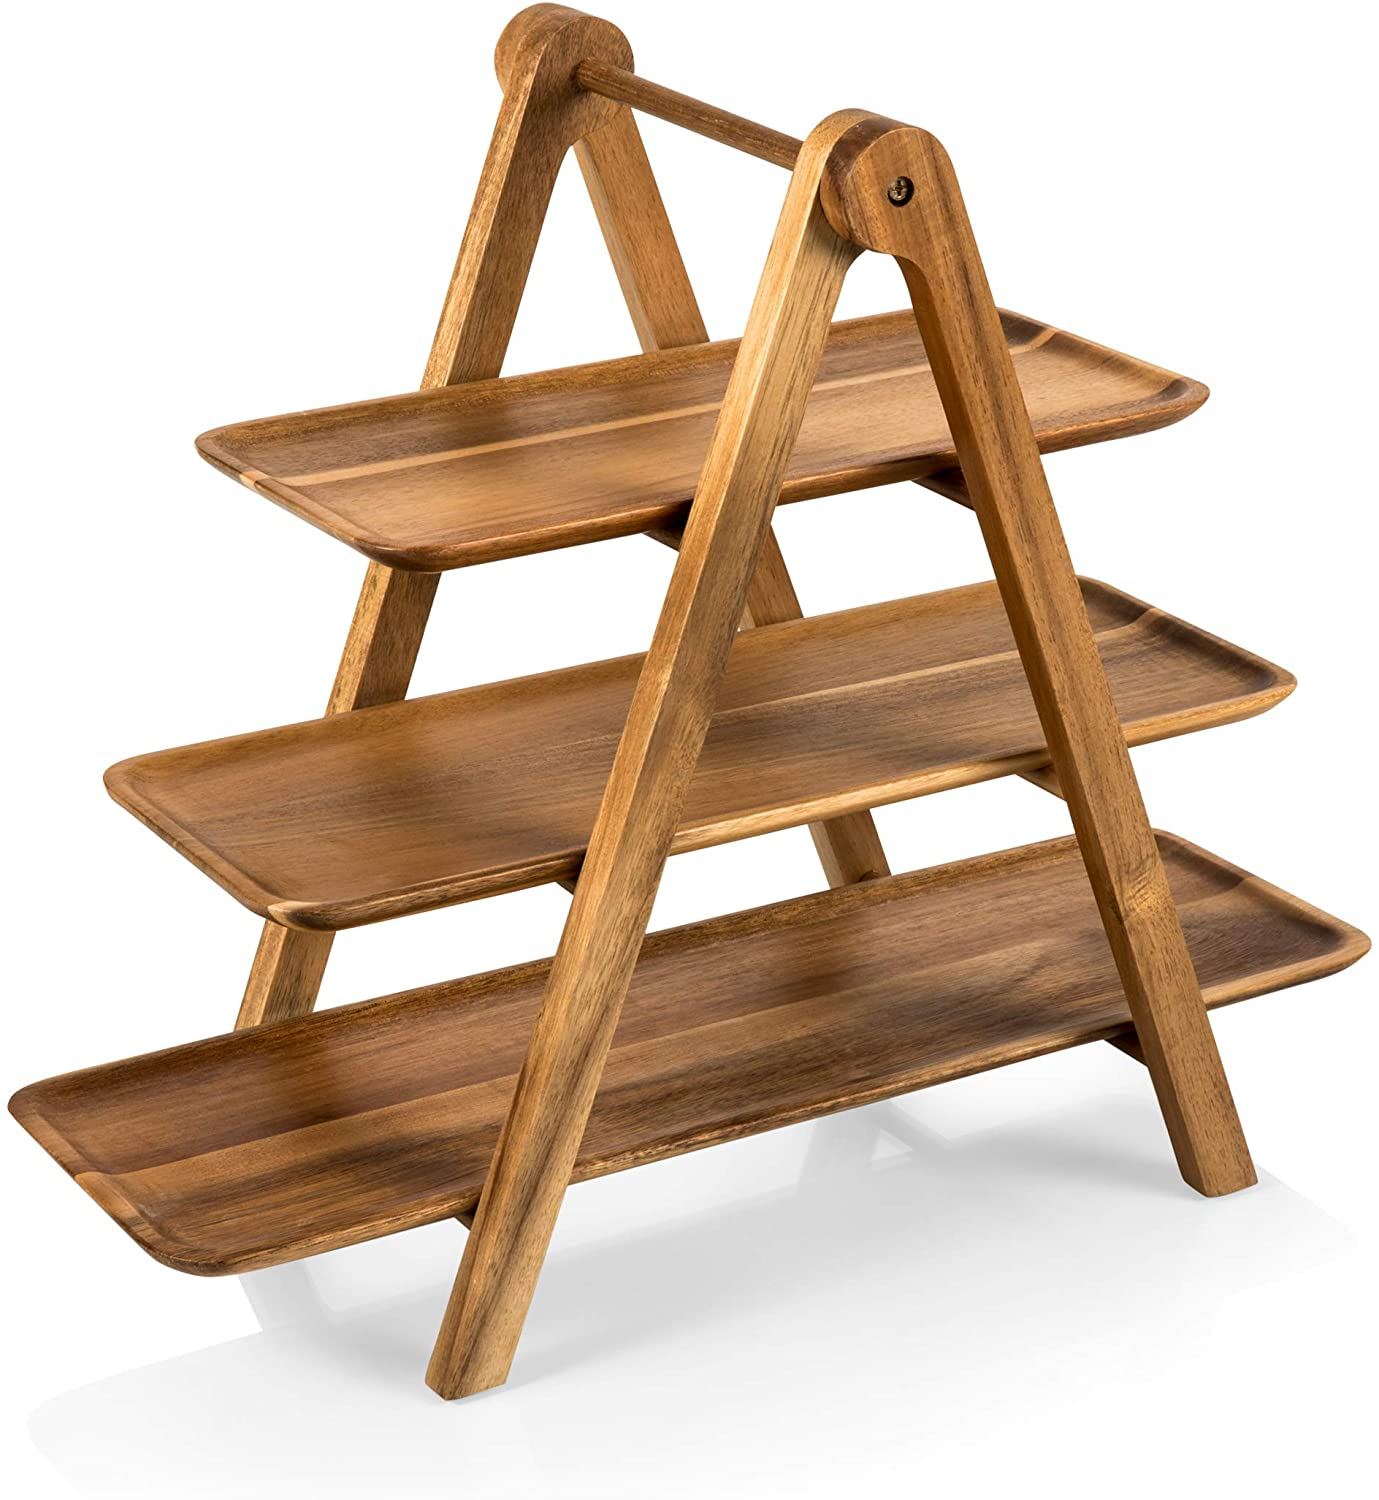 TOSCANA - a Picnic Time Brand 829-03 Three-Tiered Acacia Ladder Serving Station, 14-3/4 Inch